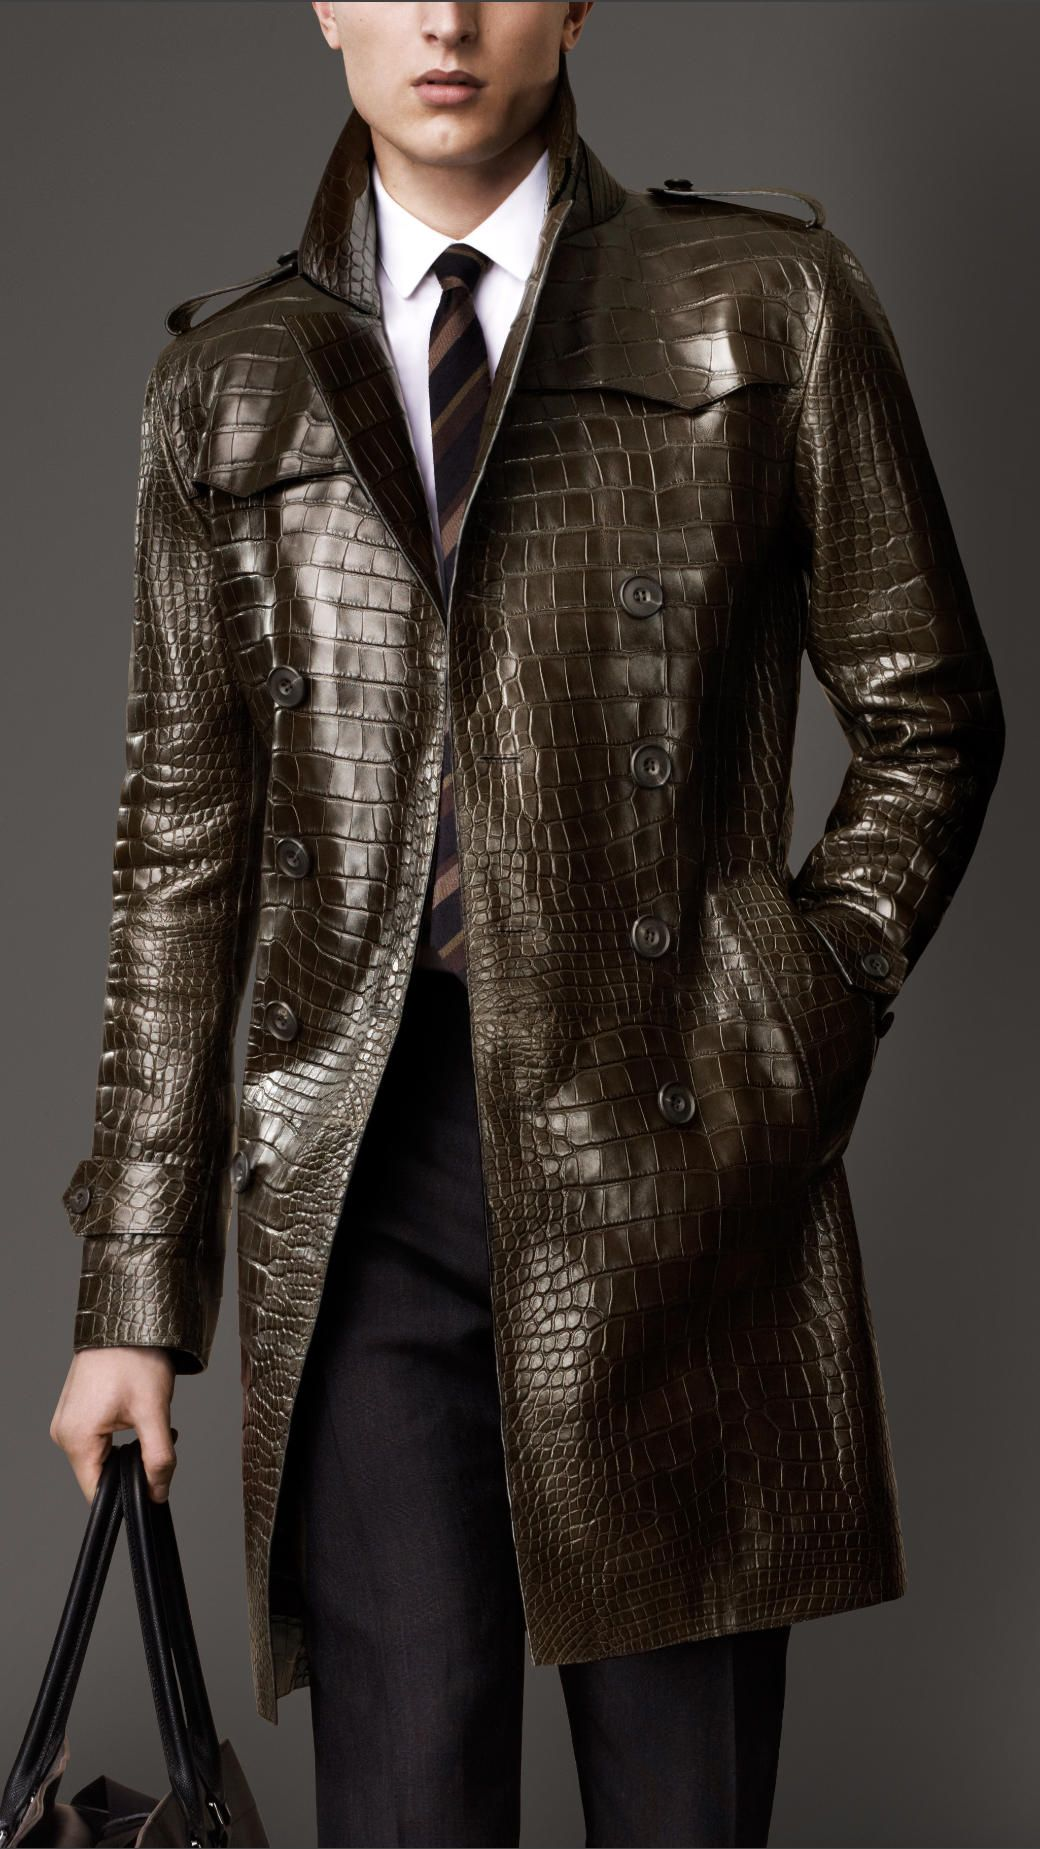 Men's Coats | Pea, Duffle & Top Coats | Burberry, Trench coats and ...